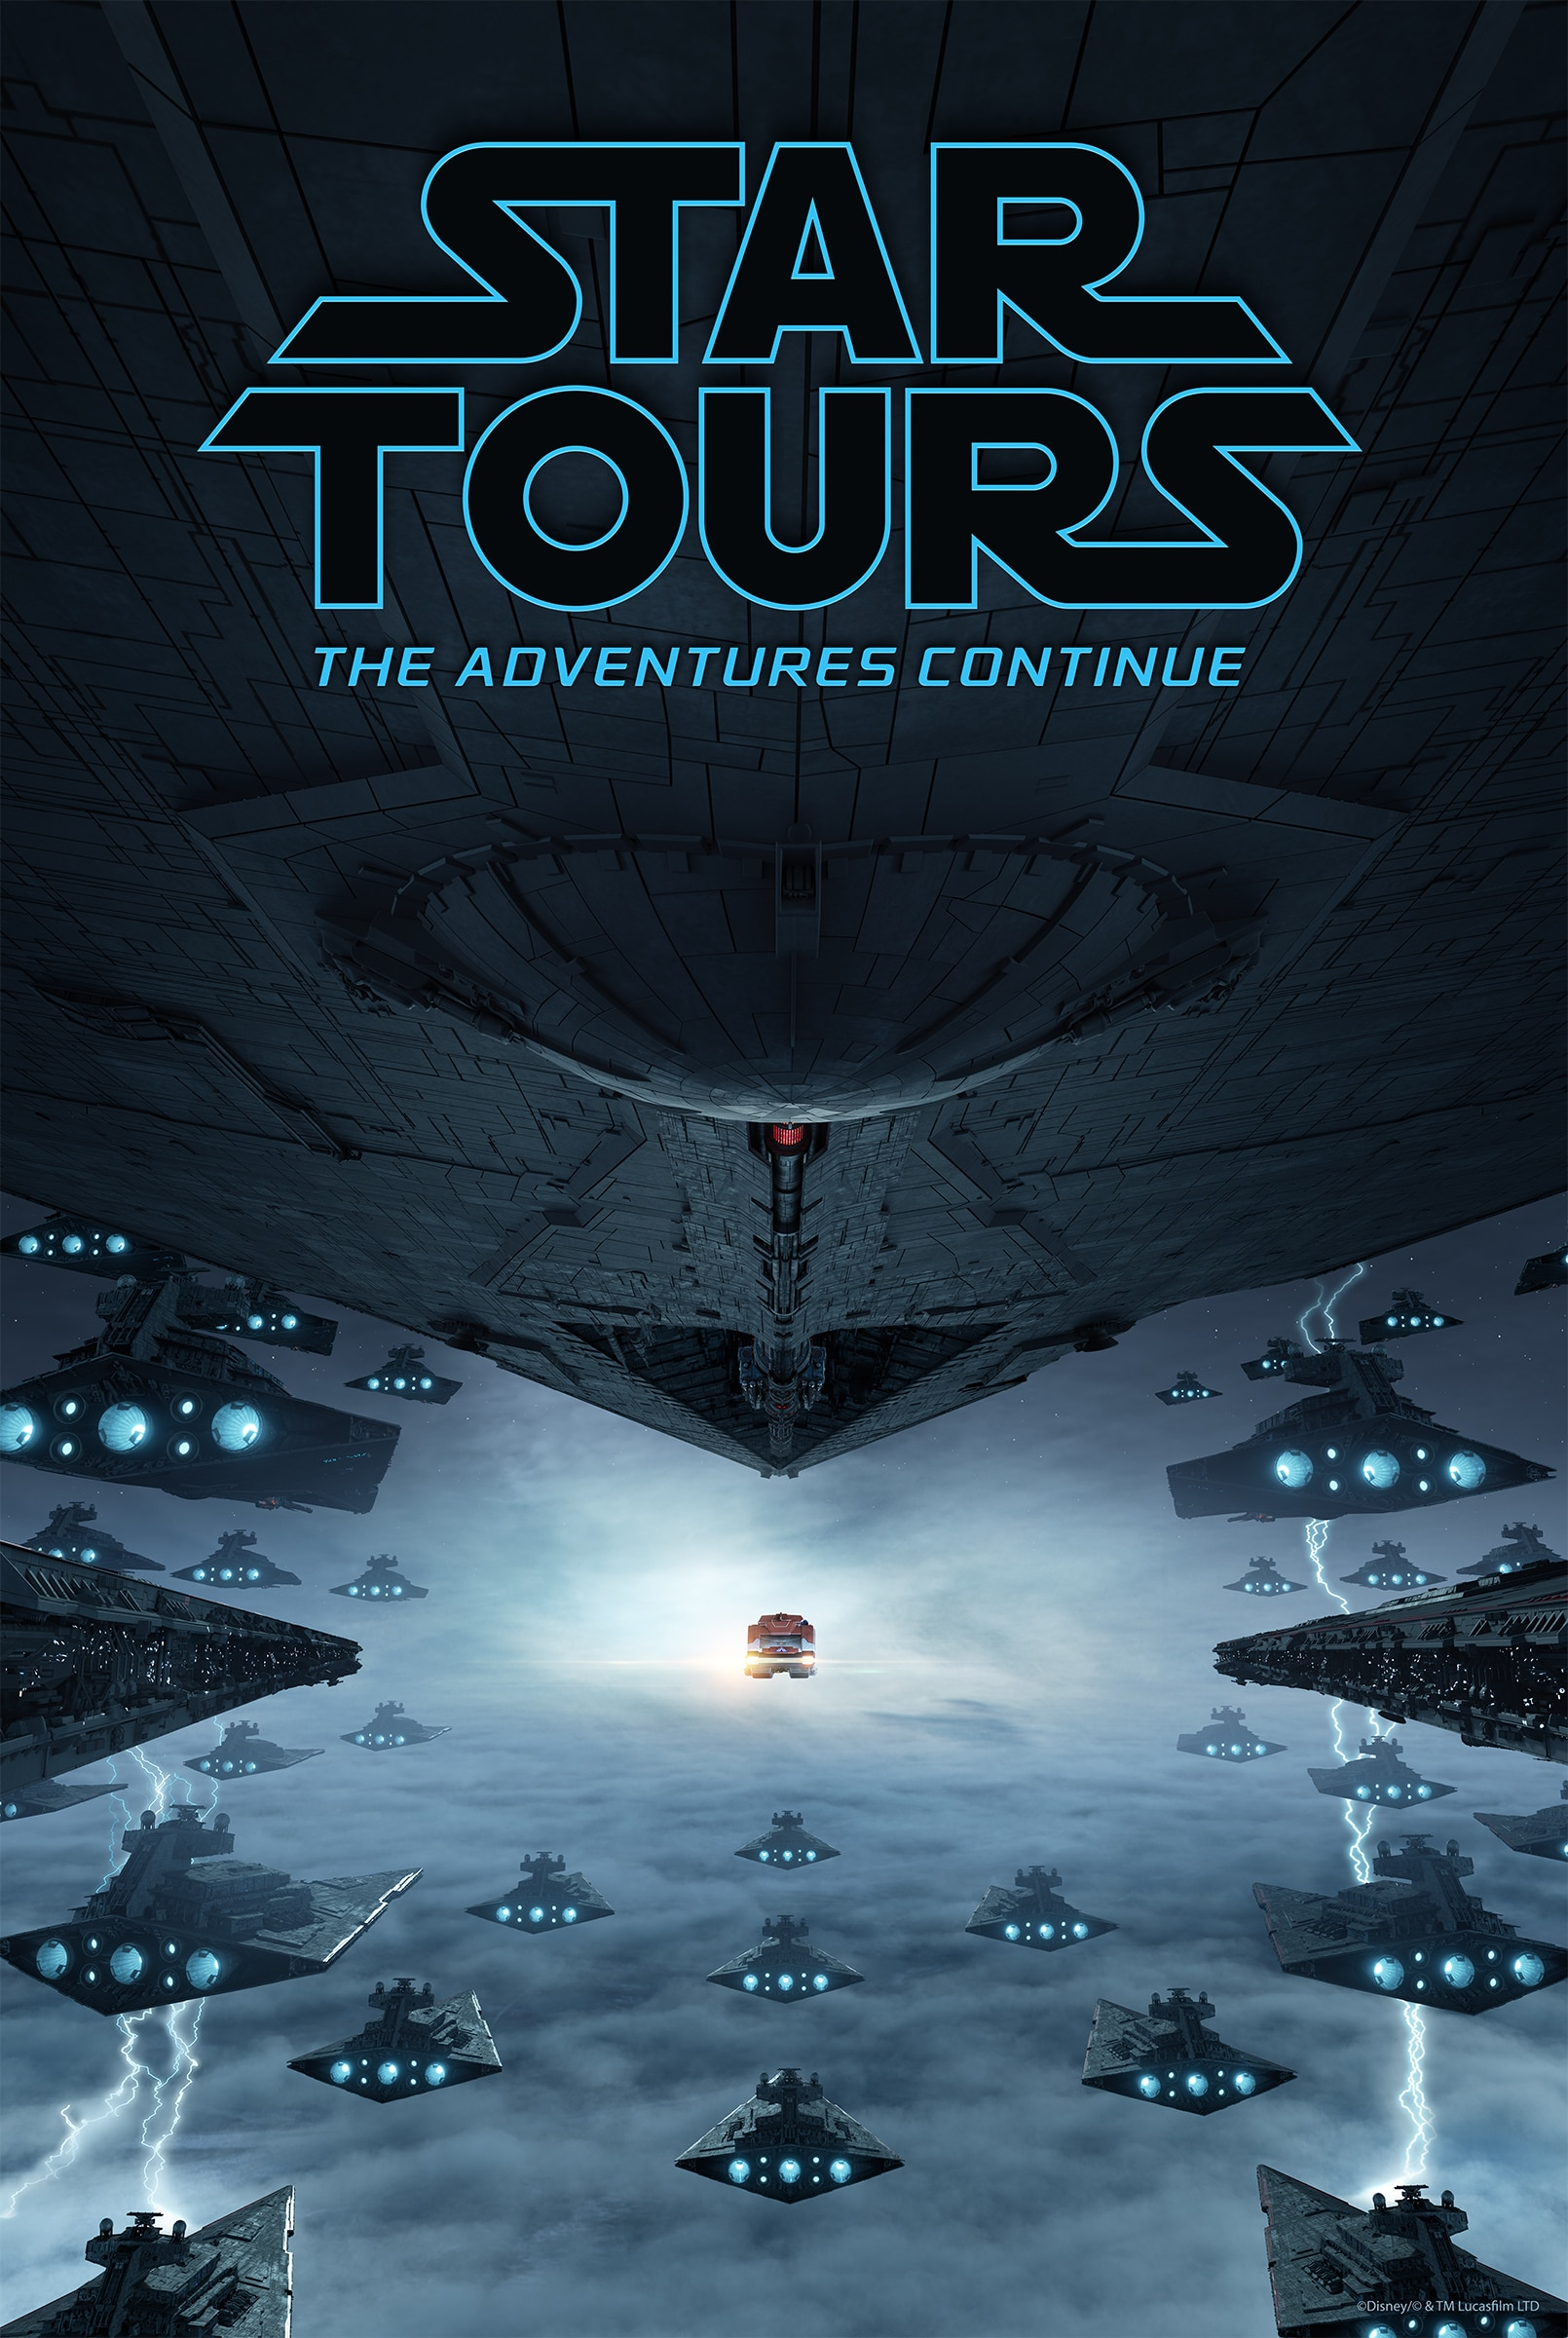 Star Tours: The Adventures Continue Star Wars The Rise of Skywalker Attraction Poster